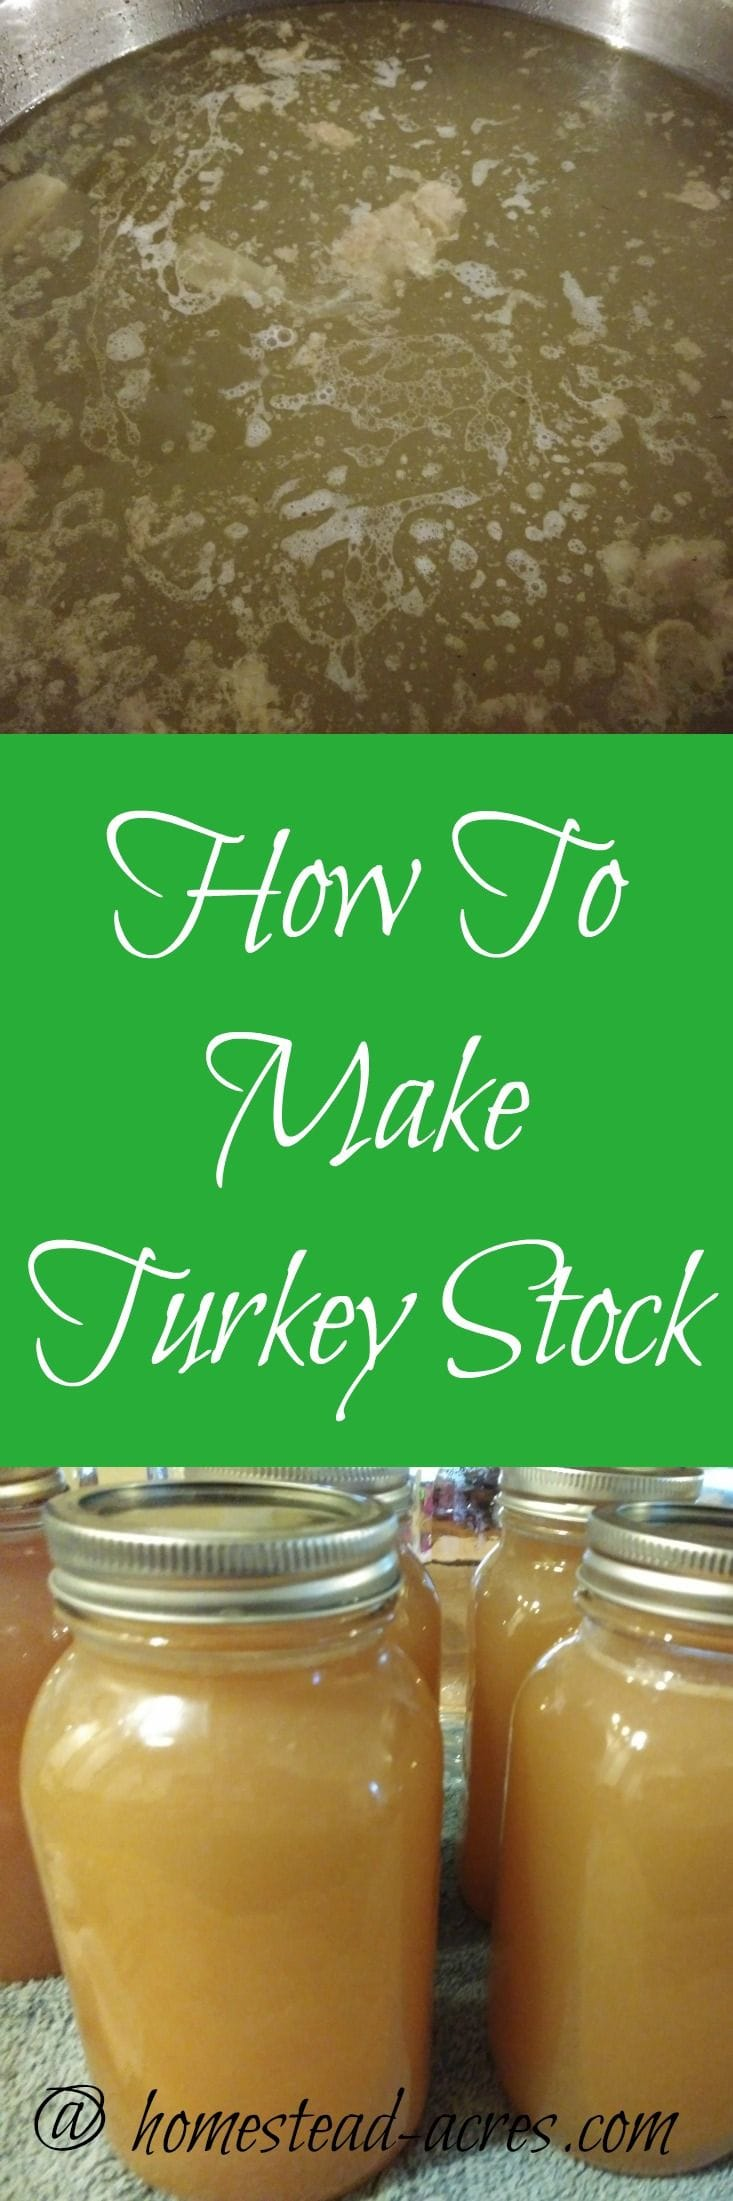 Making your own turkey stock